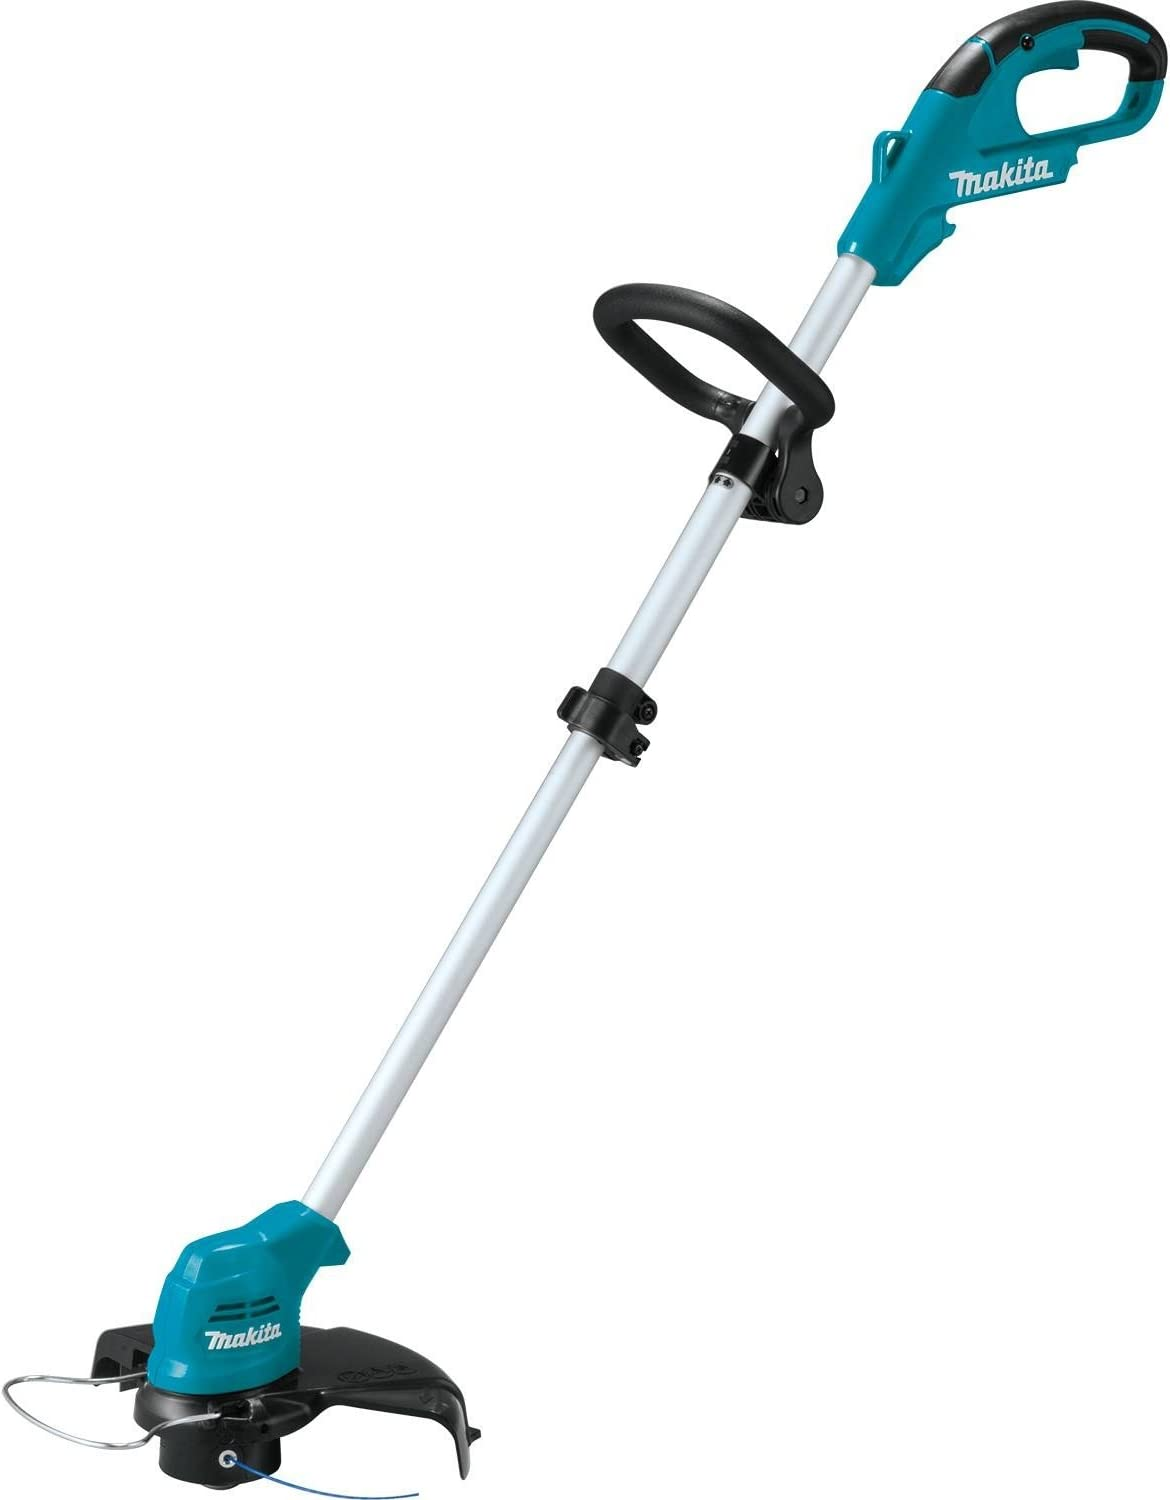 Amazon.com: Makita ru03z 12 V Iones de litio taladro ...